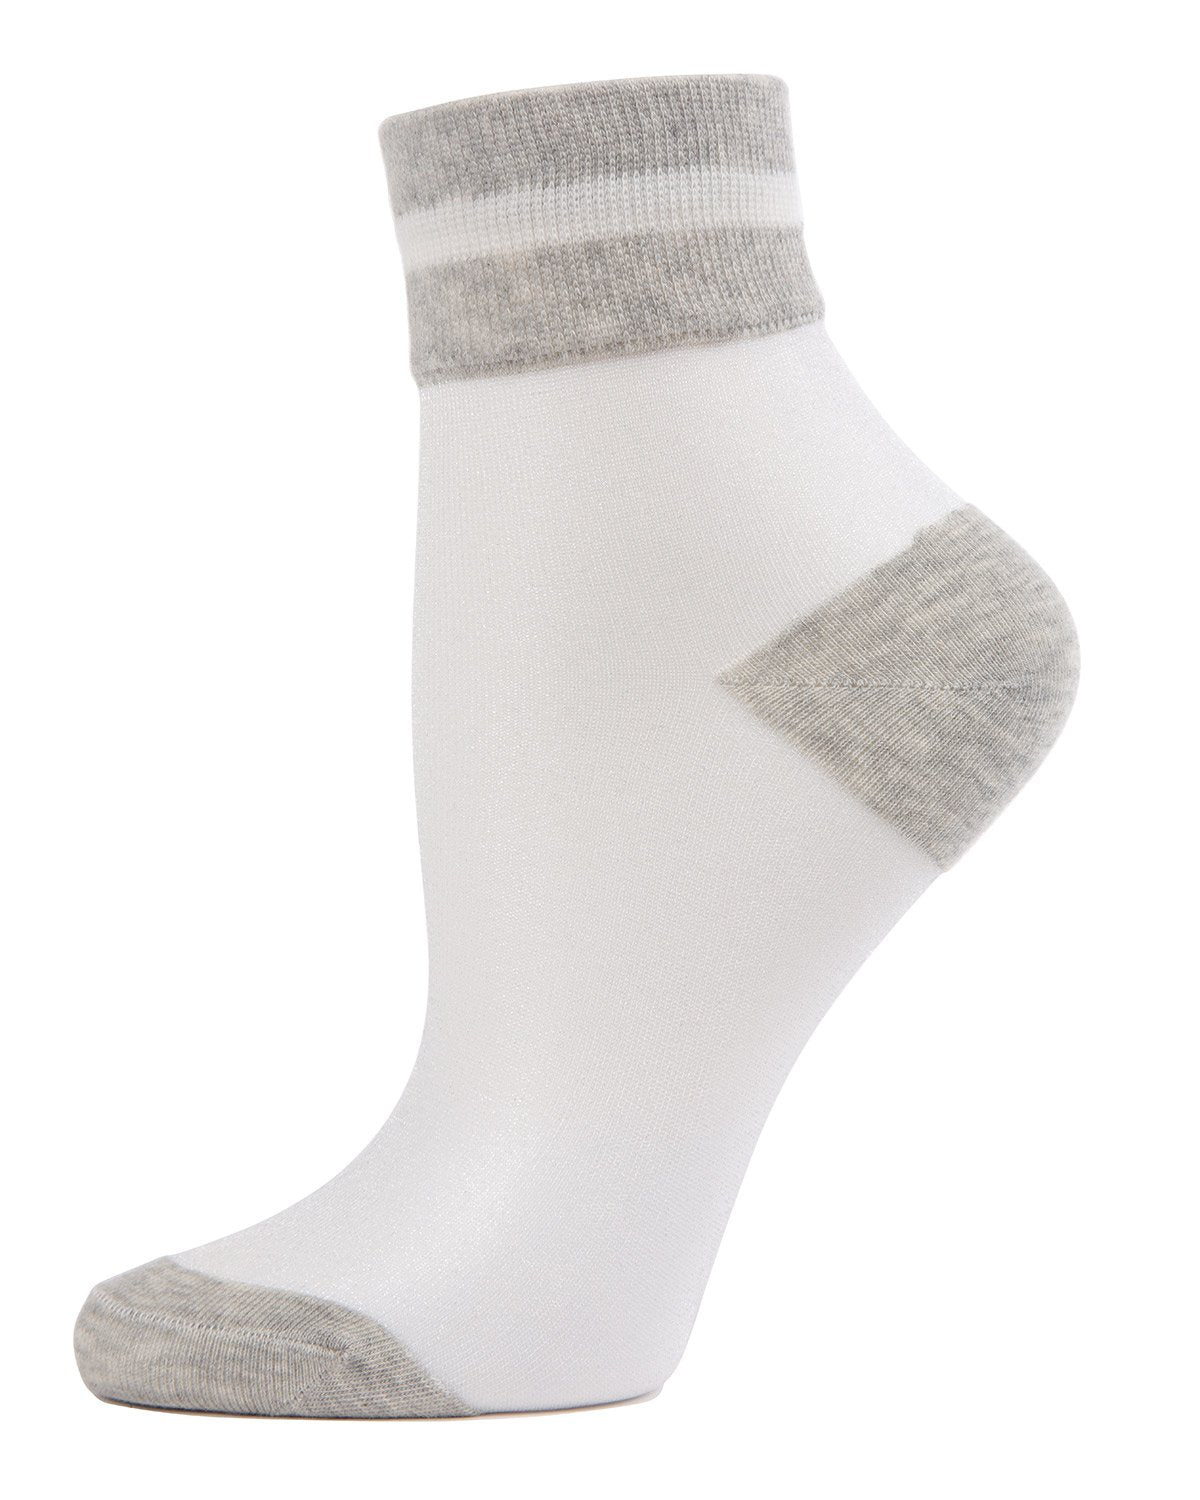 Sheer Ankle Socks with Striped Cuff